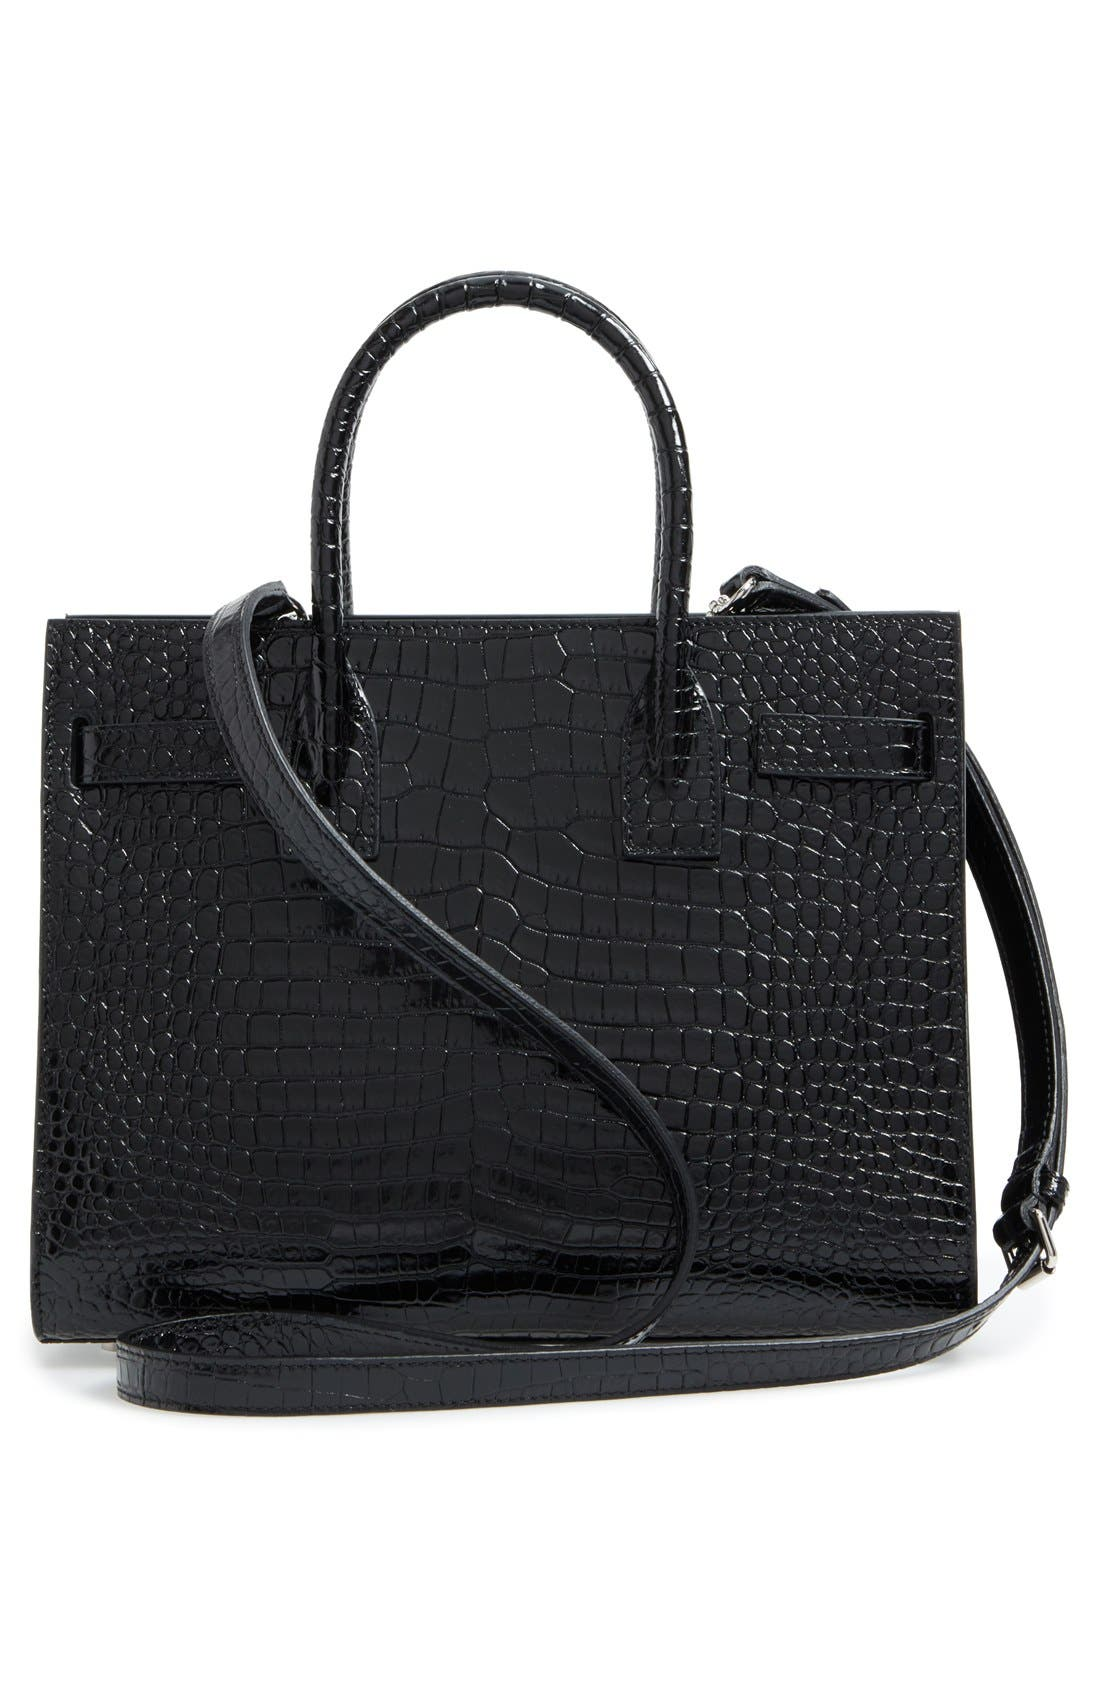 Alternate Image 2  - Saint Laurent Baby Sac de Jour Croc Embossed Calfskin Leather Tote